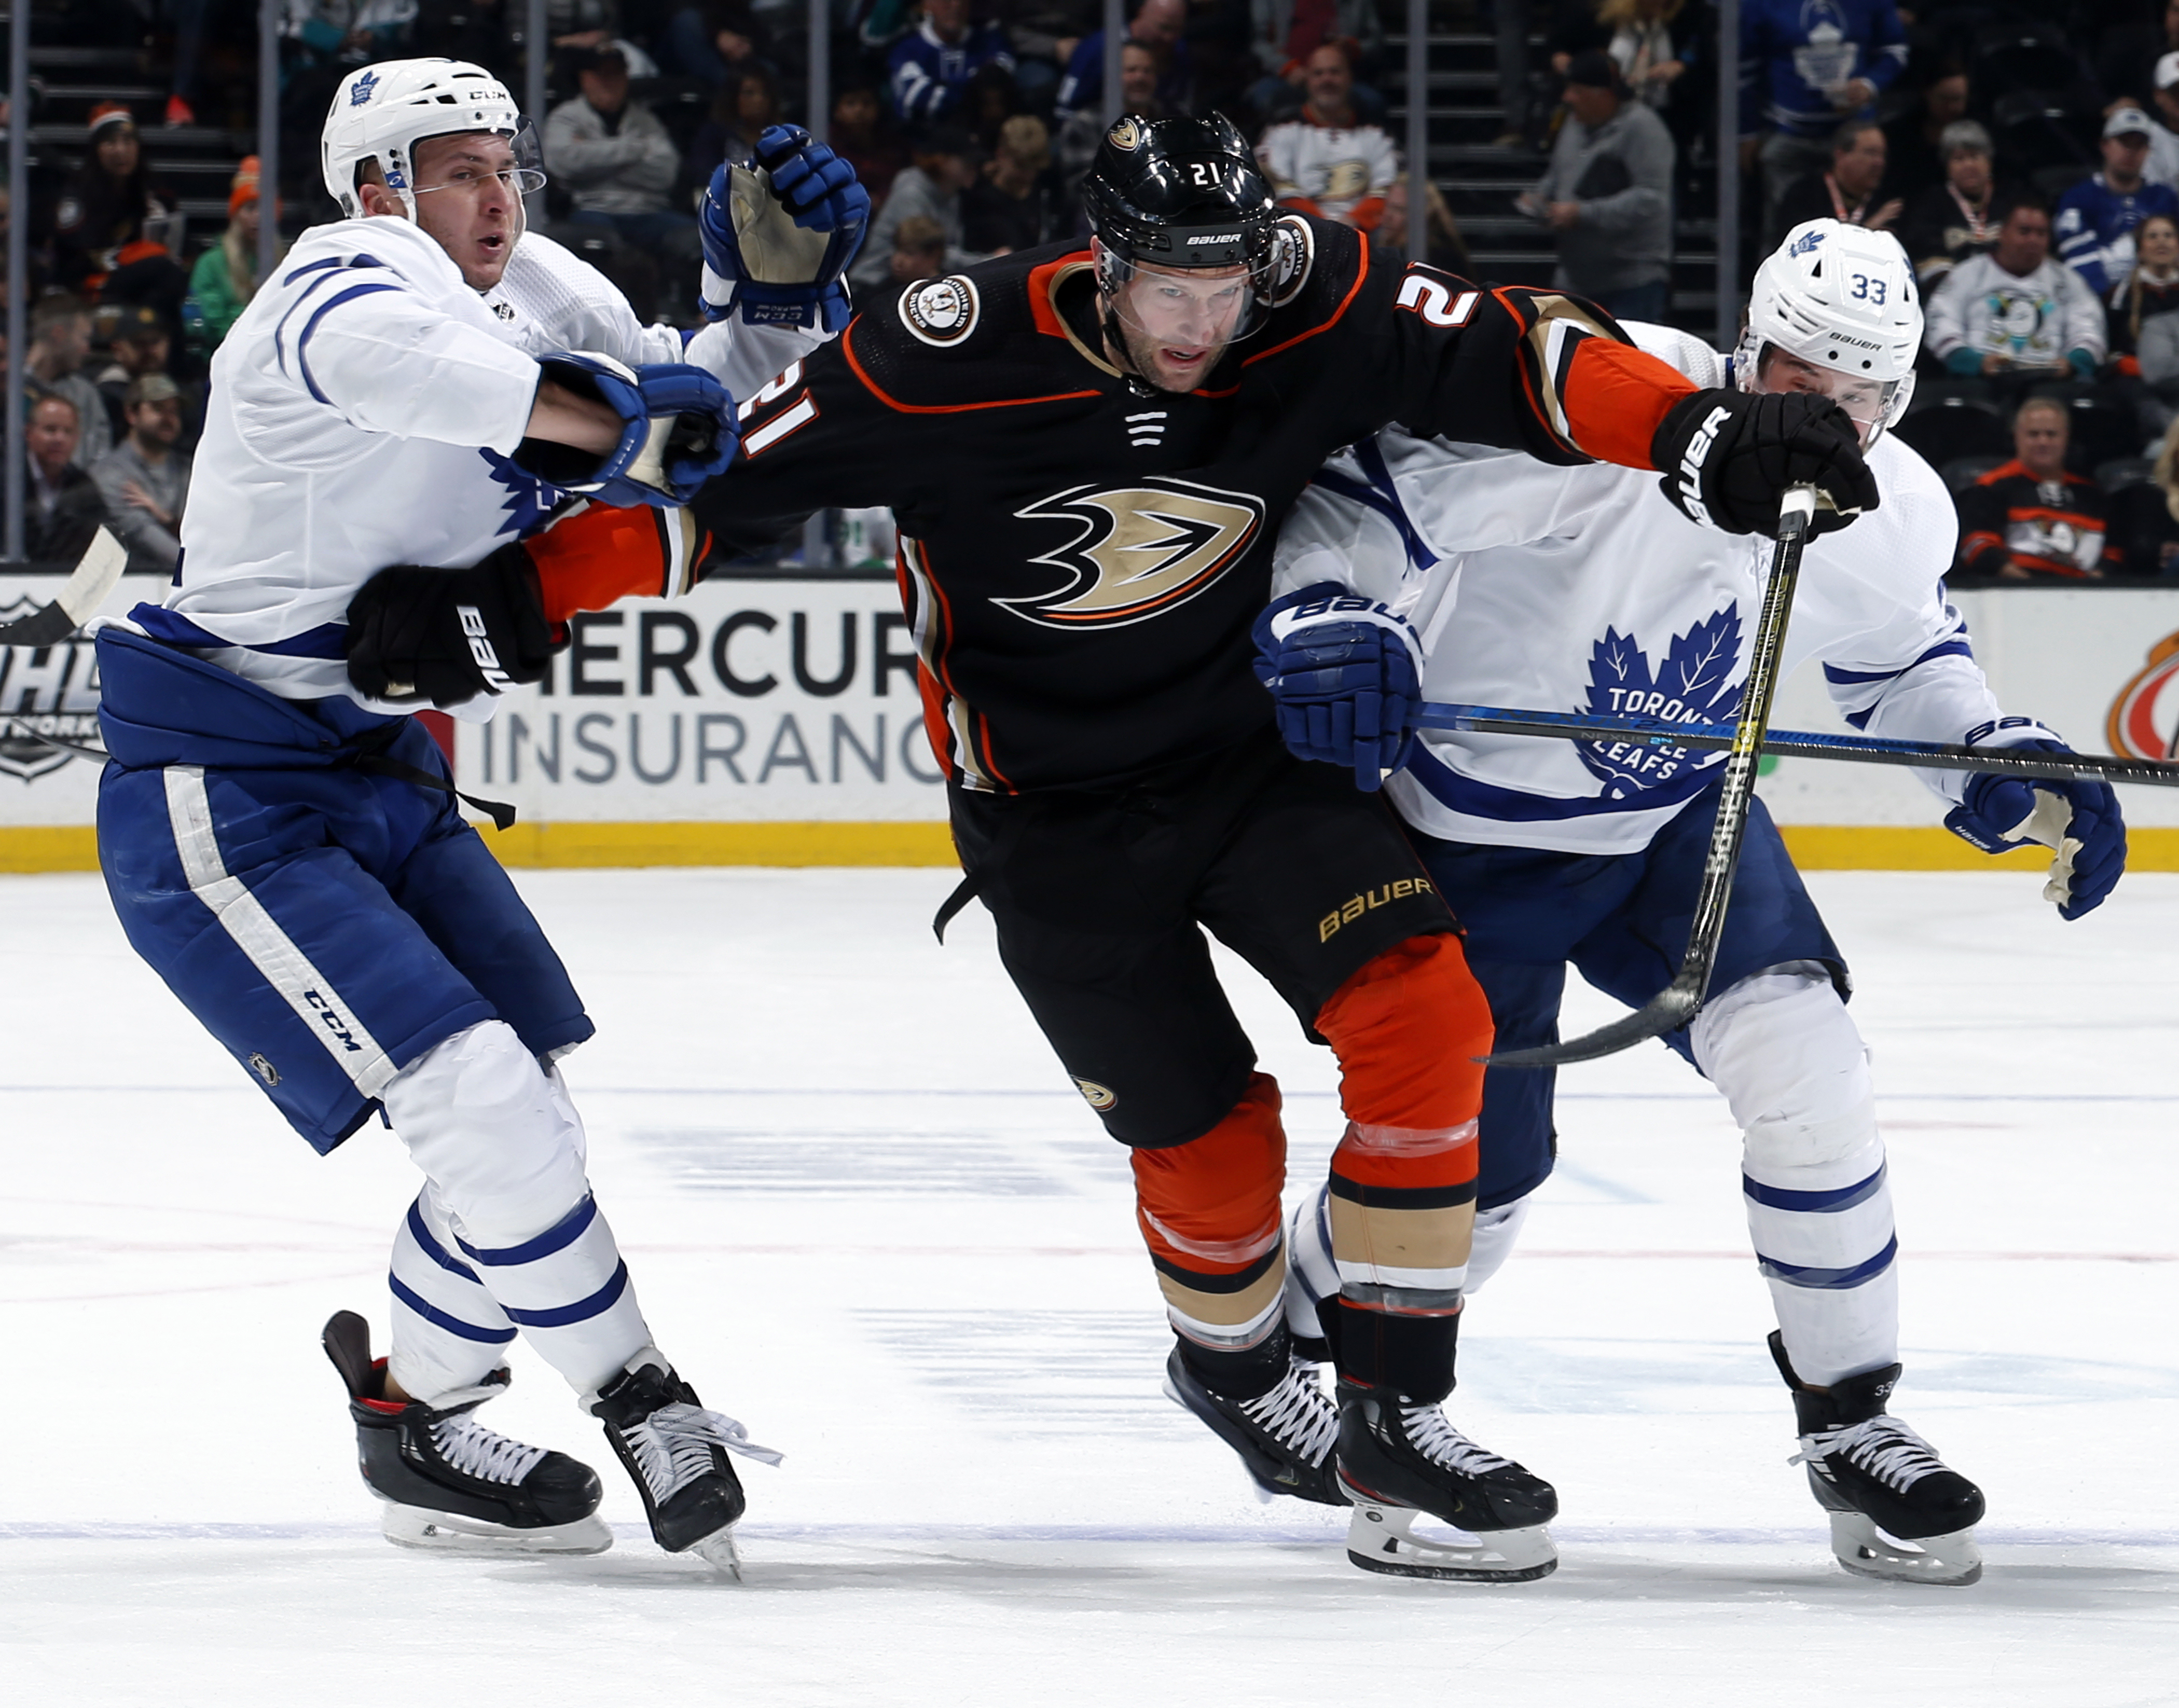 ANAHEIM, CA - MARCH 6: David Backes #21 of the Anaheim Ducks battles for position against Martin Marincin #52 and Frederik Gauthier #33 of the Toronto Maple Leafs during the game at Honda Center on March 6, 2020 in Anaheim, California.